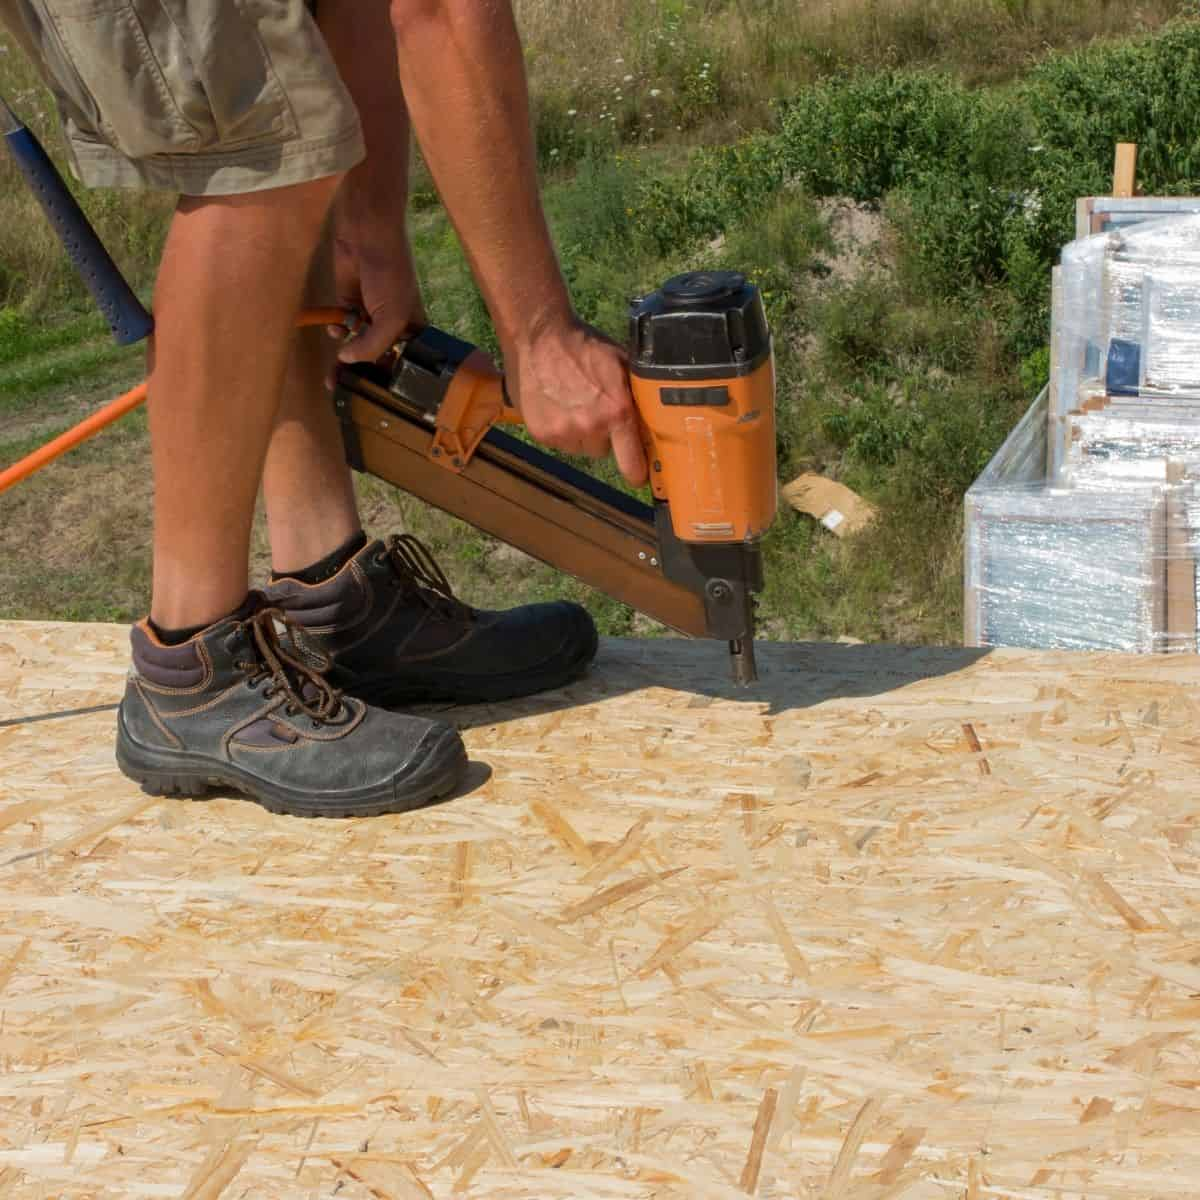 construction worker nailing OSB sheet to flooring joists